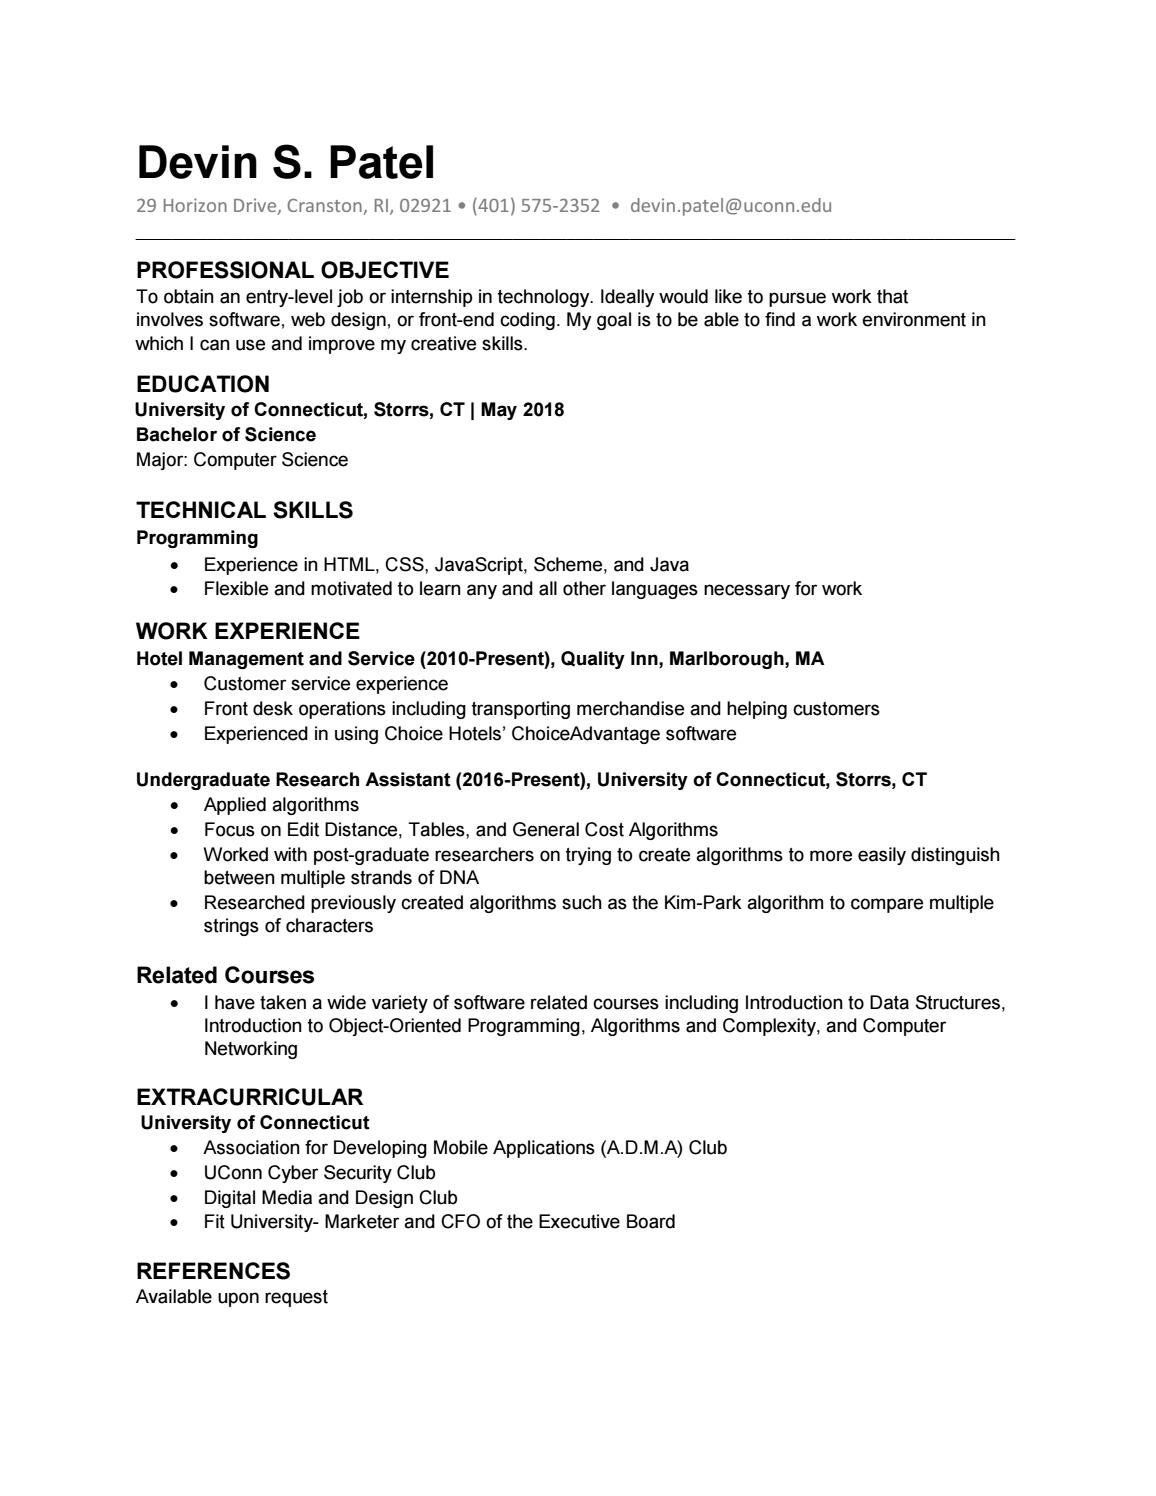 Resume by Devin Patel - issuu